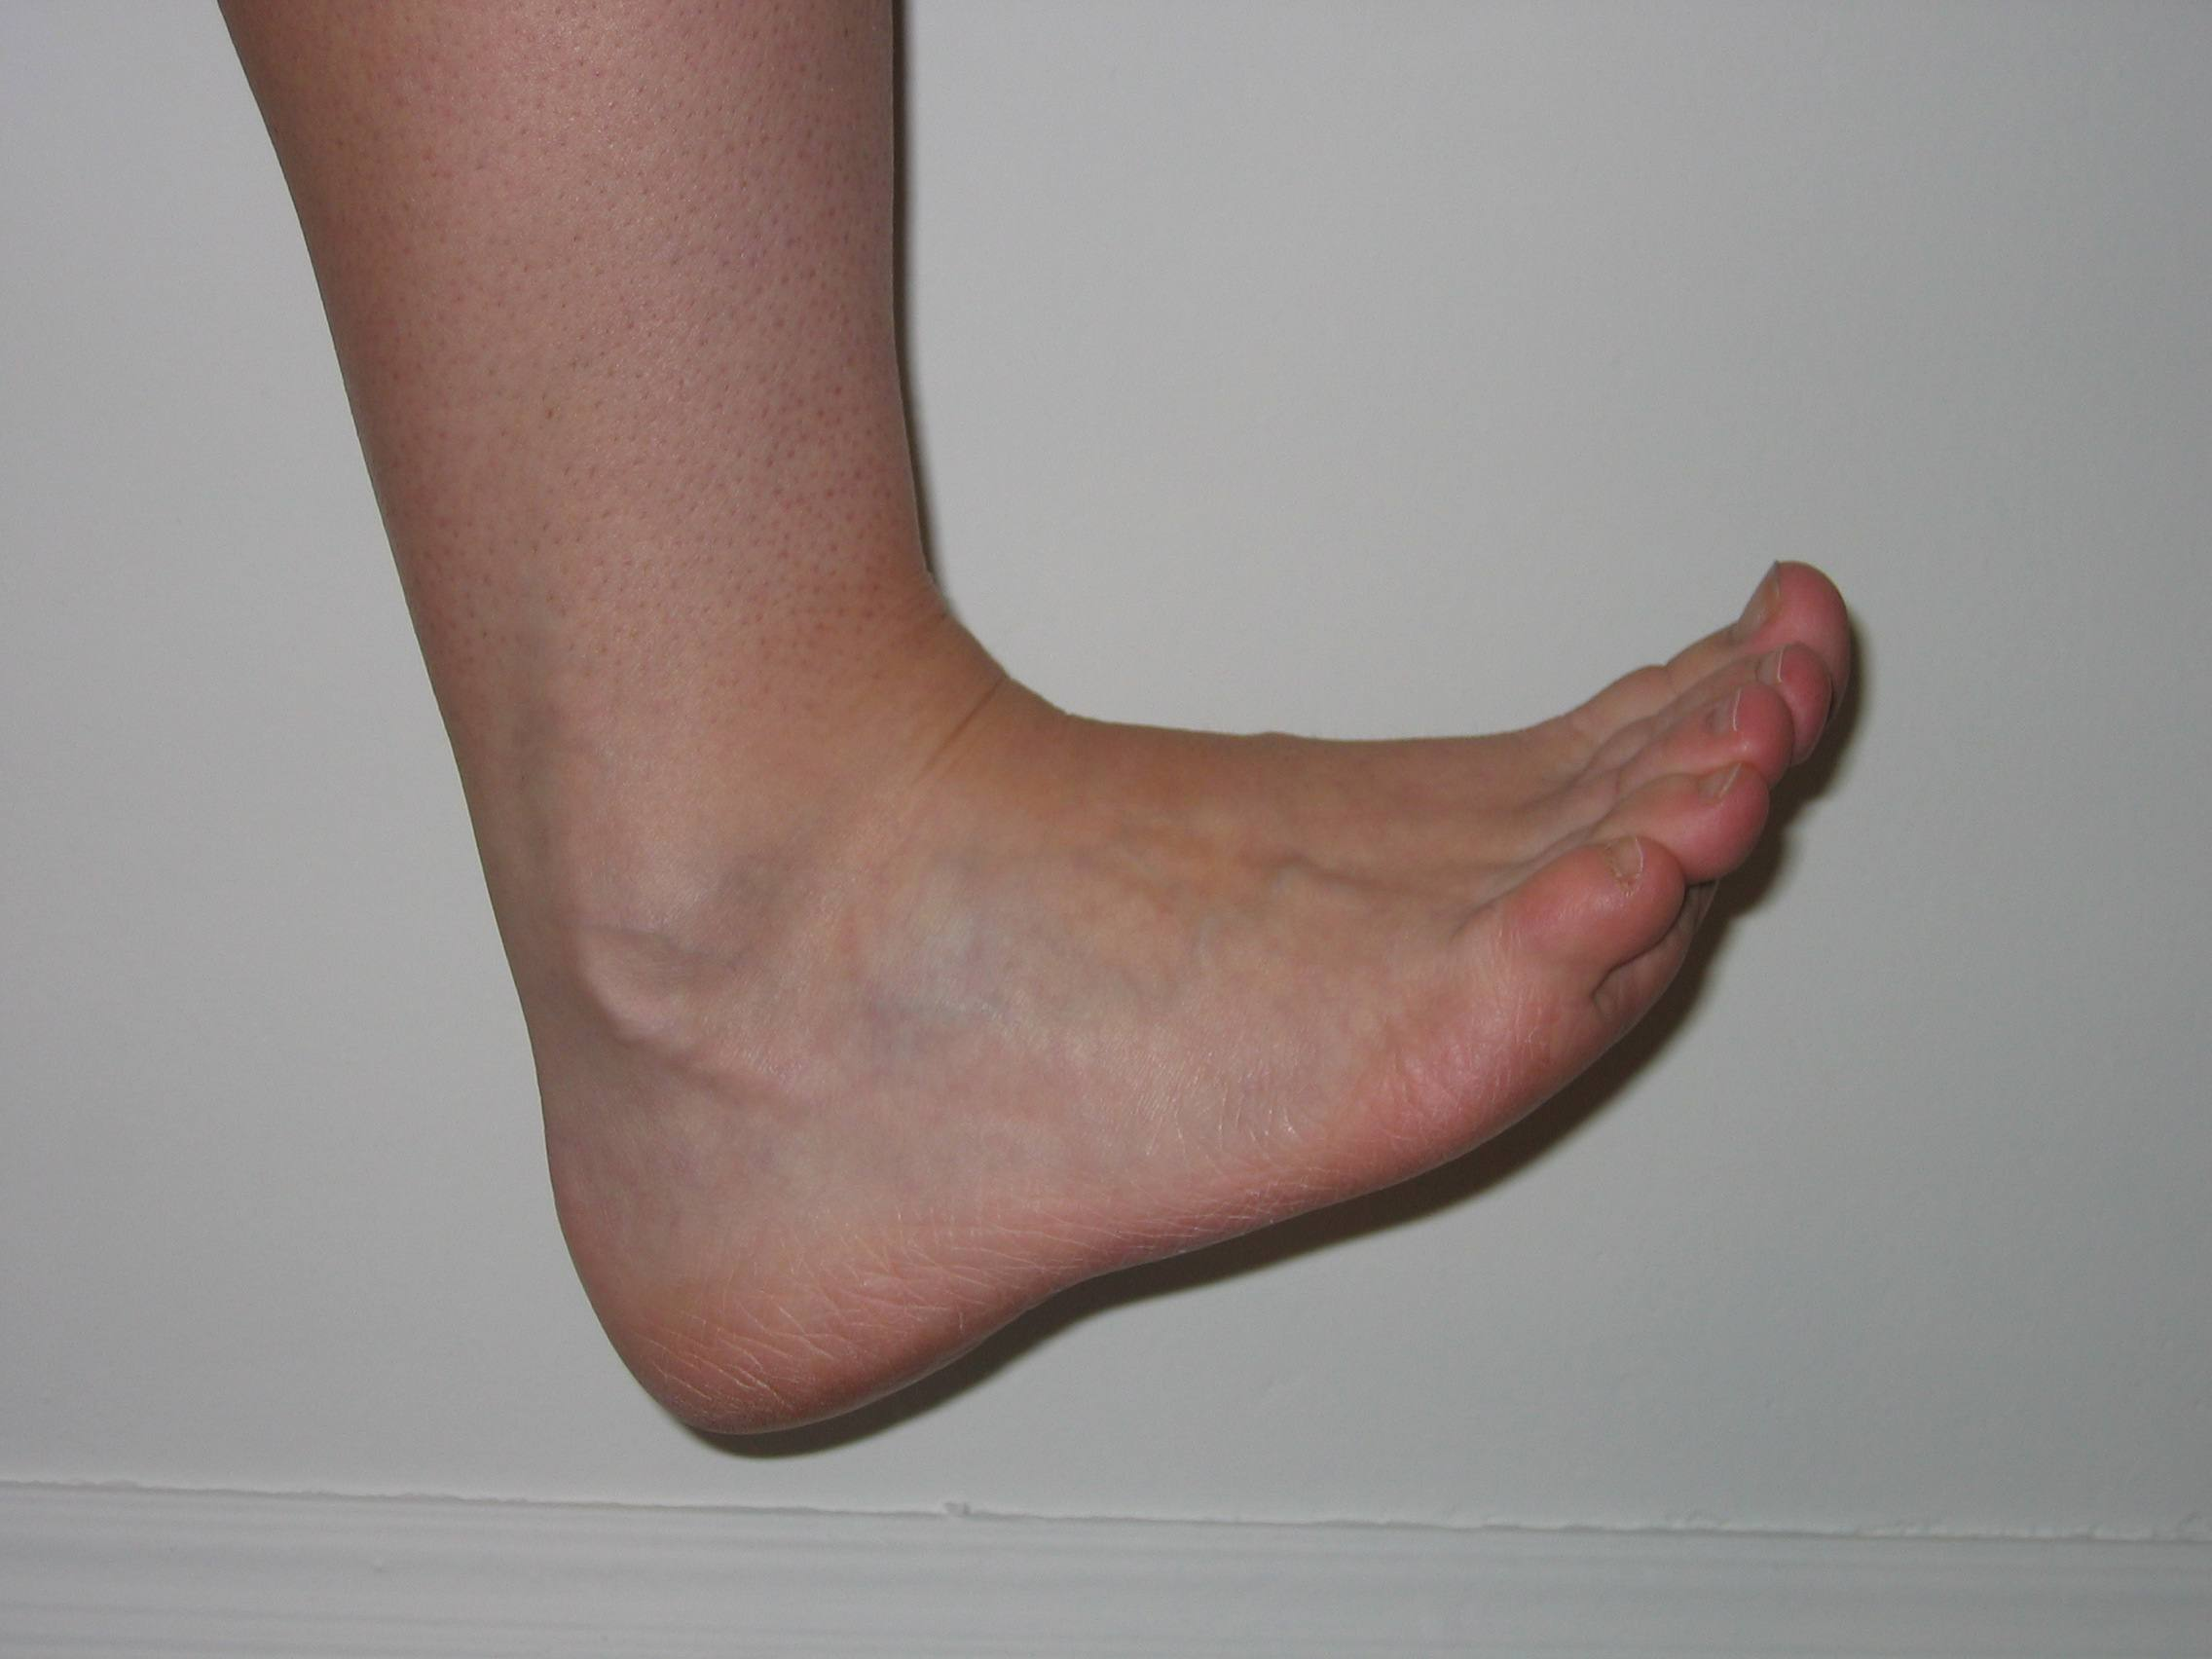 Picture Of A Foot photo 9